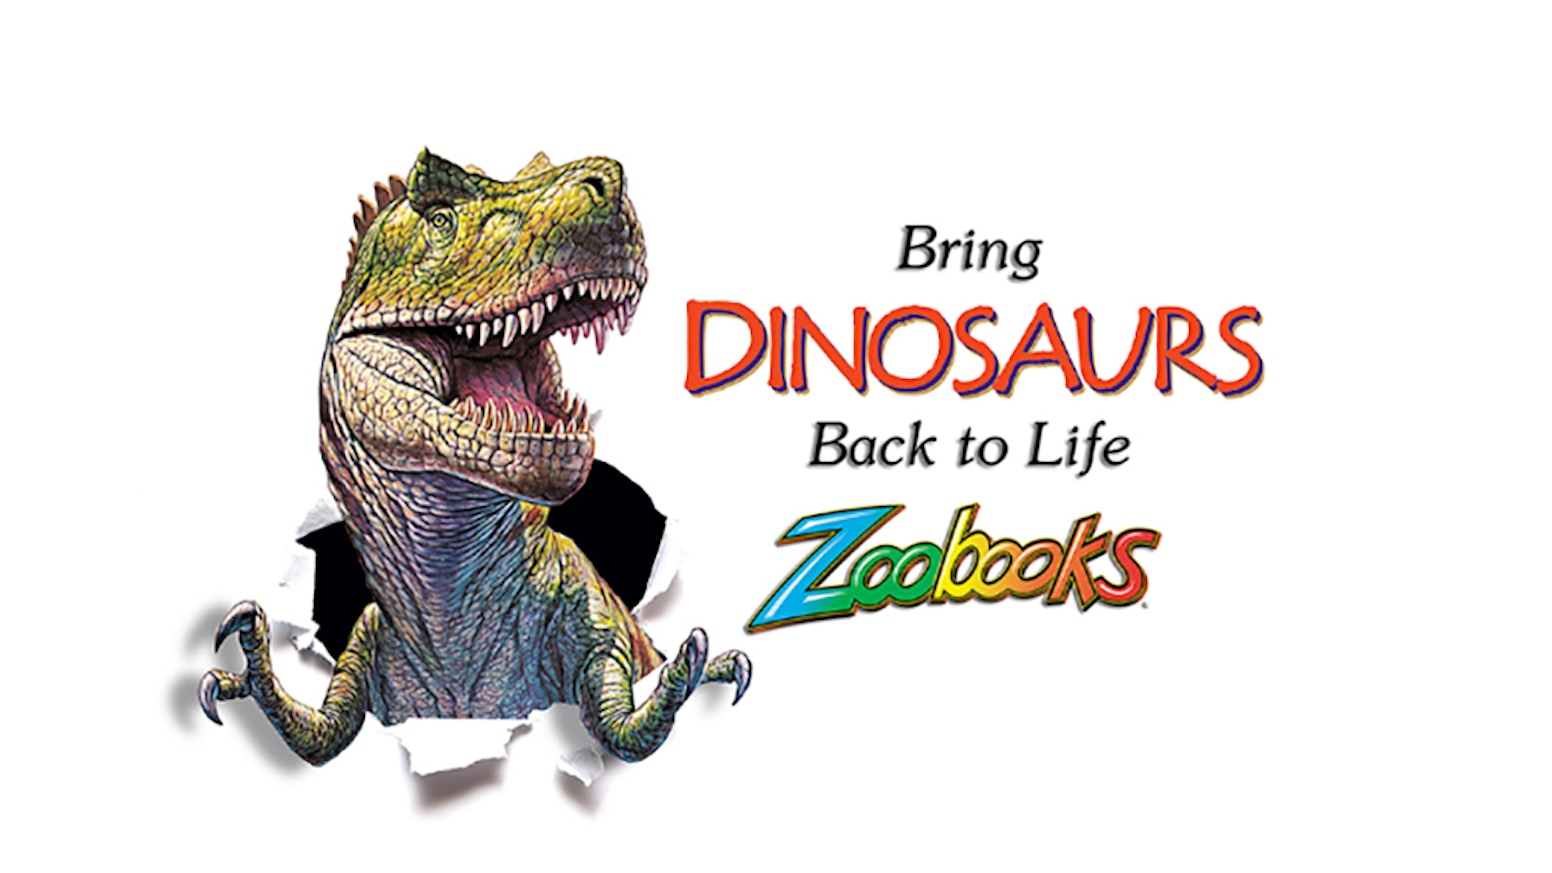 Bring Dinosaurs Back to Life: New Zoobooks Dinos for Kids by